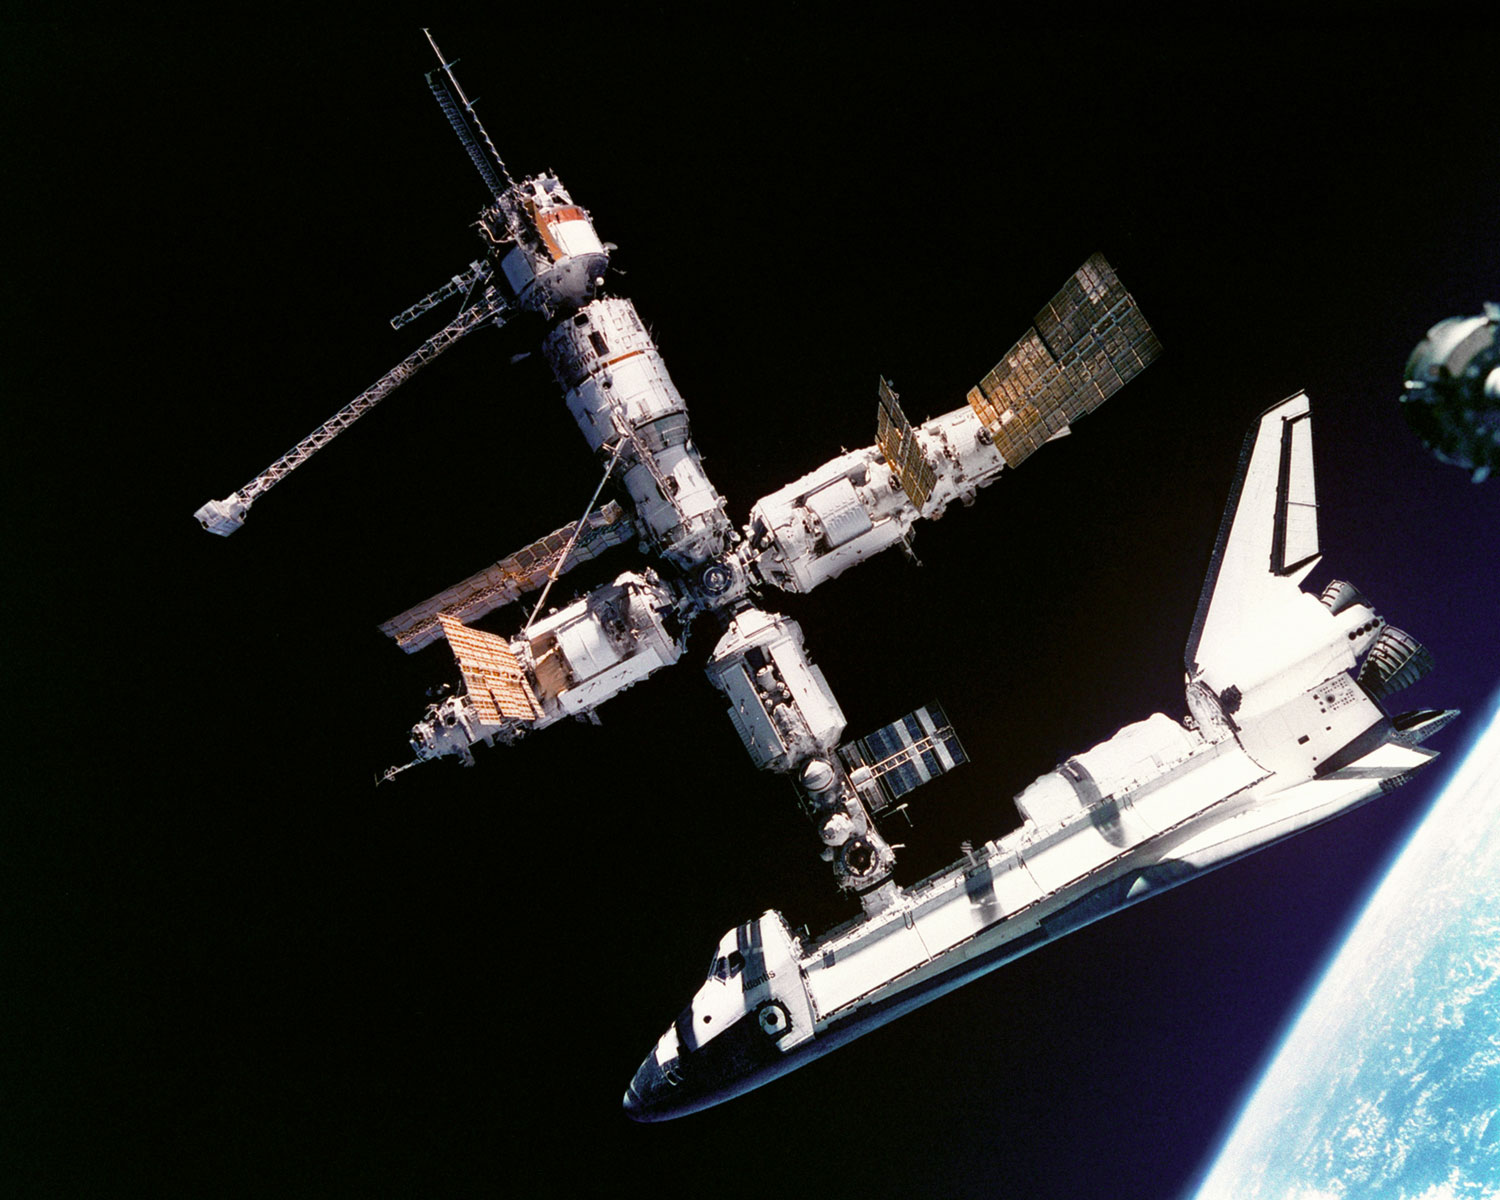 space shuttle to iss - photo #21